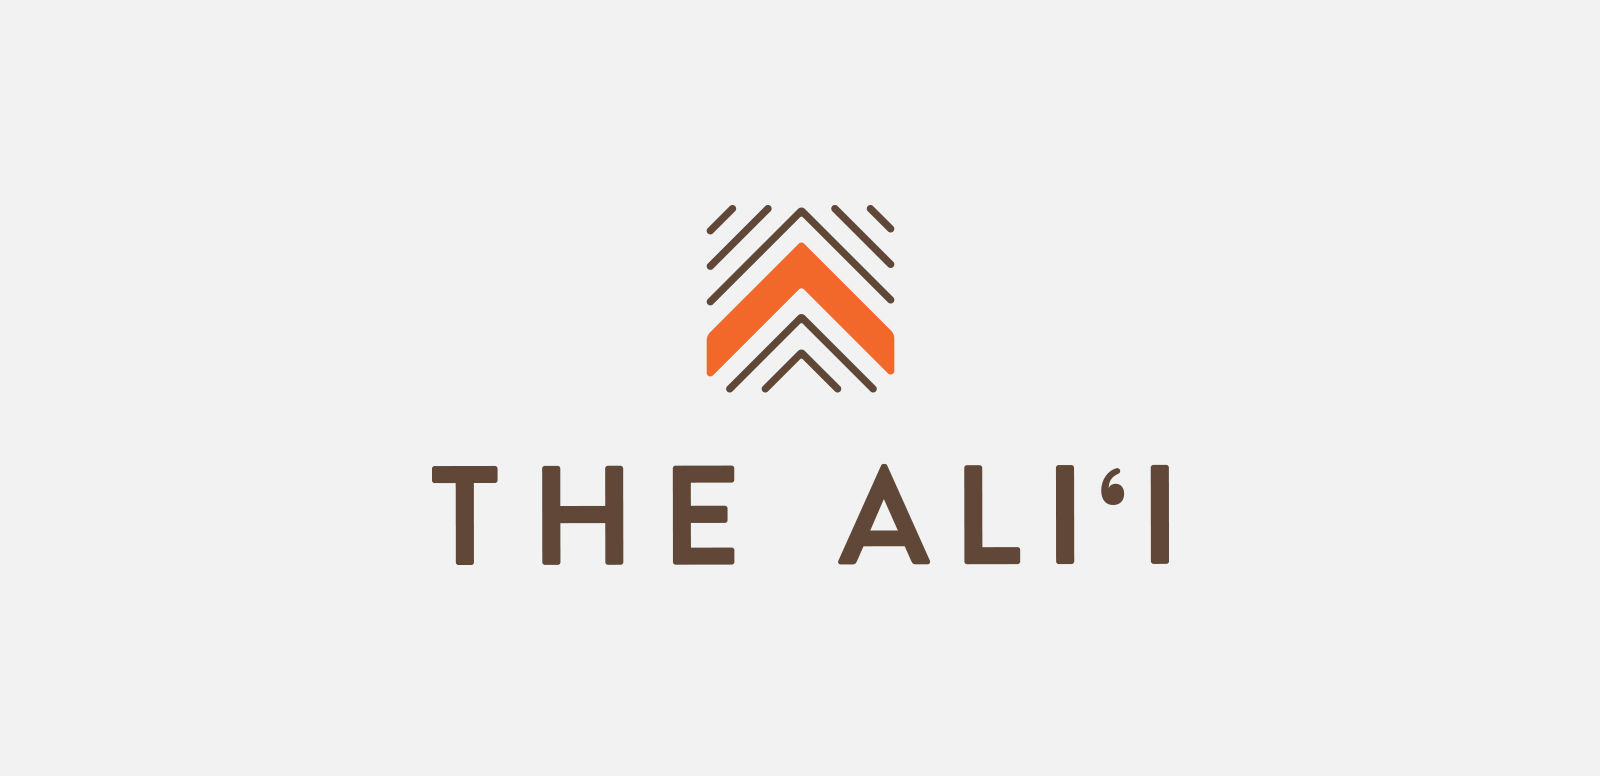 THE ALII  Logo for an elevated resort experience at Hilton Hawaiian Village. Done at MVNP, 2016.